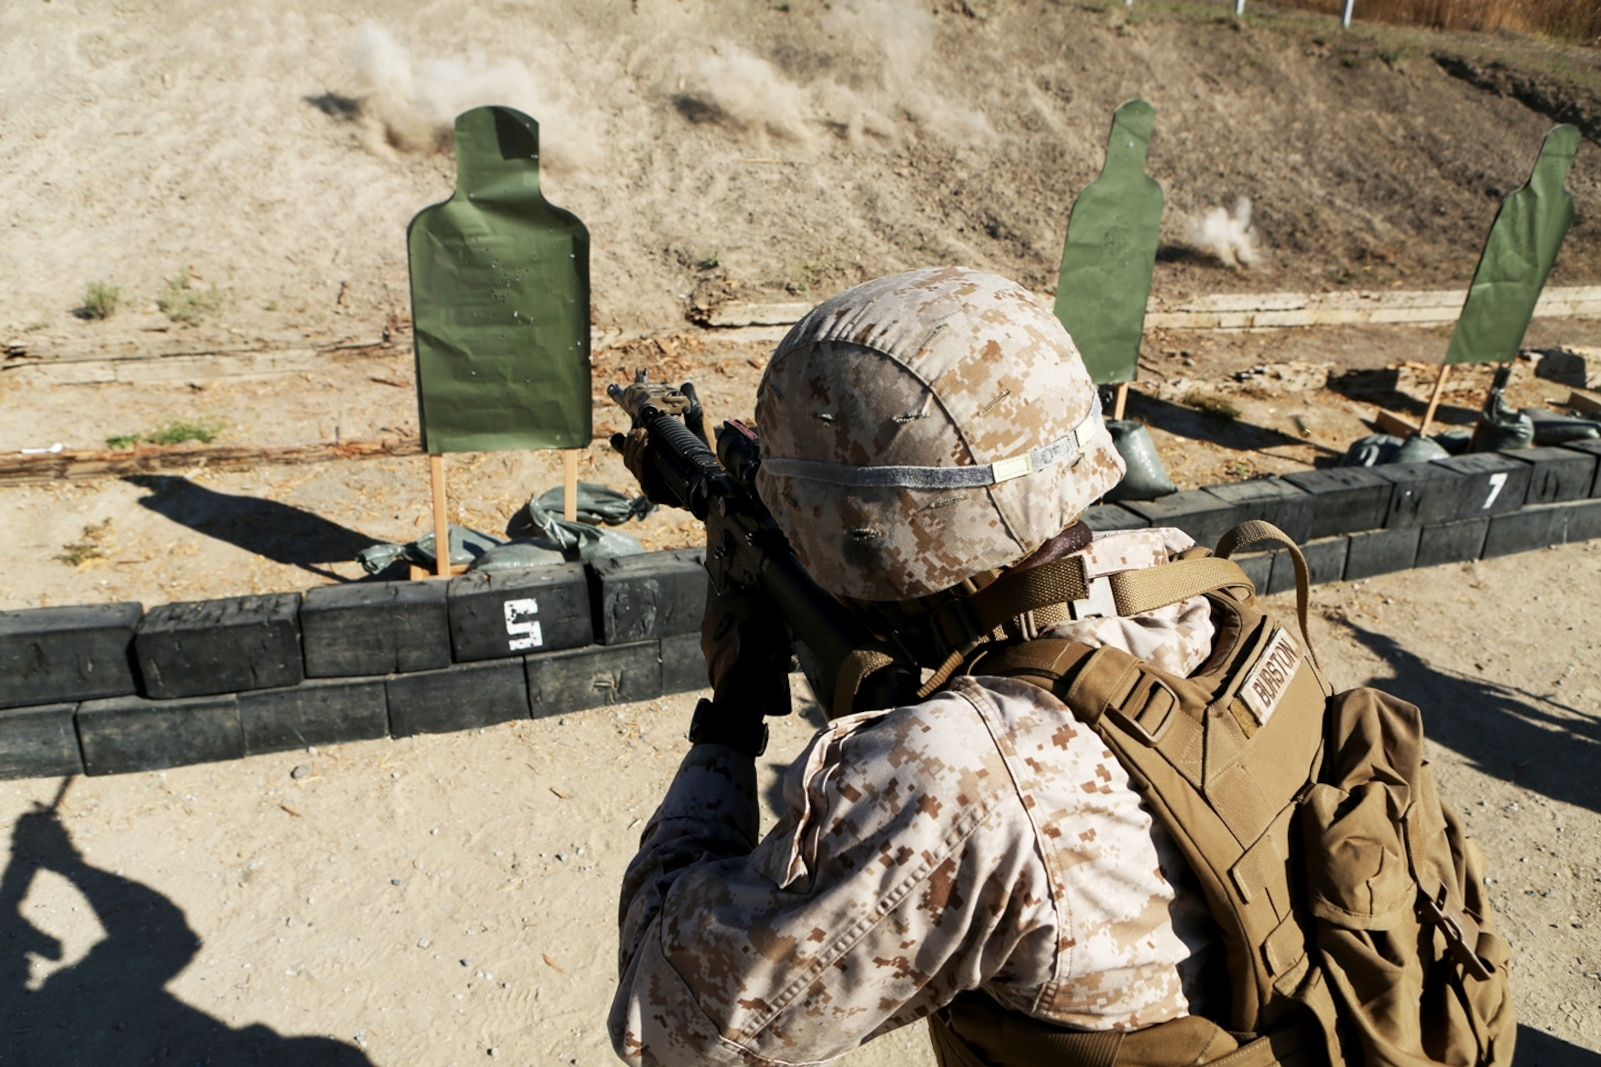 U.S. Marine Cpl. Nigel Burston engages his target in the table three course of fire during the Combat Leader's Course aboard Camp Pendleton Calif., from June 13-24, 2016. Burston is a combat engineer with Headquarters and Support Company, Combat Logistics Battalion 1, 1st MLG. Combat Leader's Course is an advanced combat skills course instructed by the Combat Skills Training School, designed to teach Marines tactical leadership principles, machine gun functions, combat orders and various other skills. (U.S. Marine Corps photo by Sgt. Carson Gramley/released)